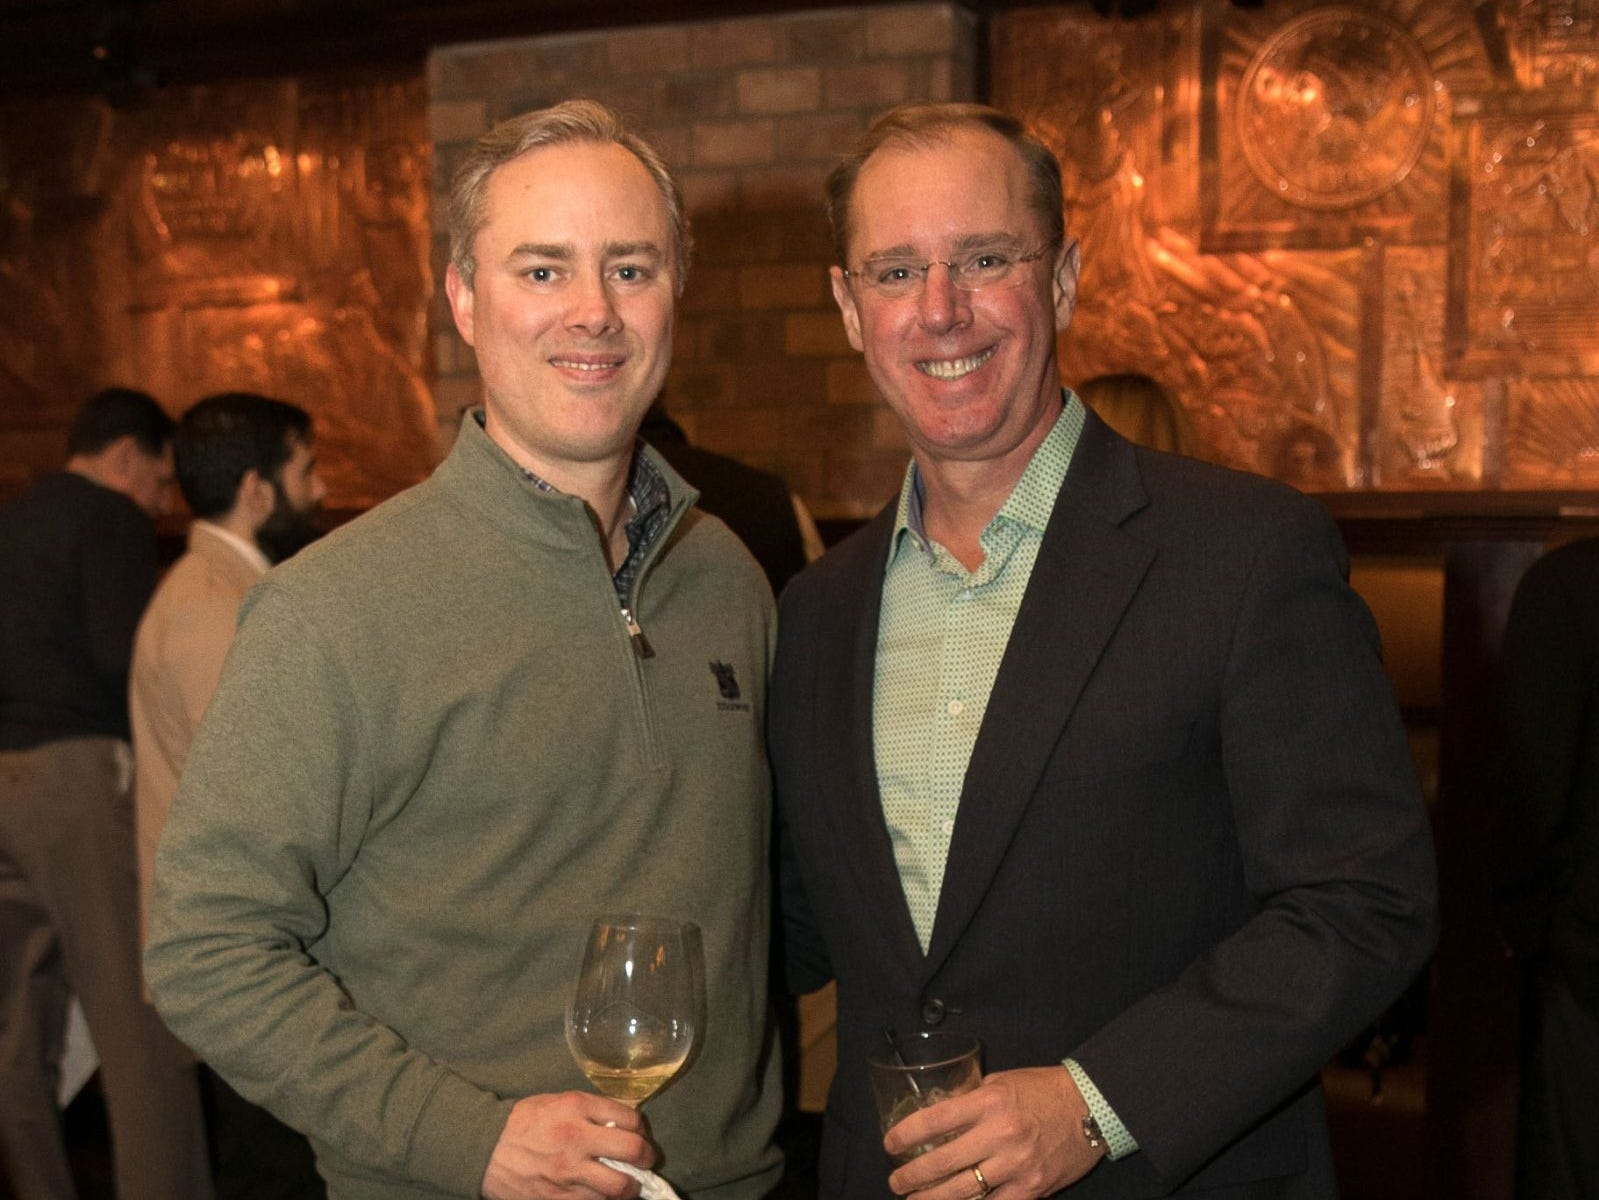 Brian Gibbons, Greg Pierce. Christina Gibbons of Special Properties held a cocktail reception to acknowledge her clients at Roots Steakhouse in Ridgewood. 02/07/2019